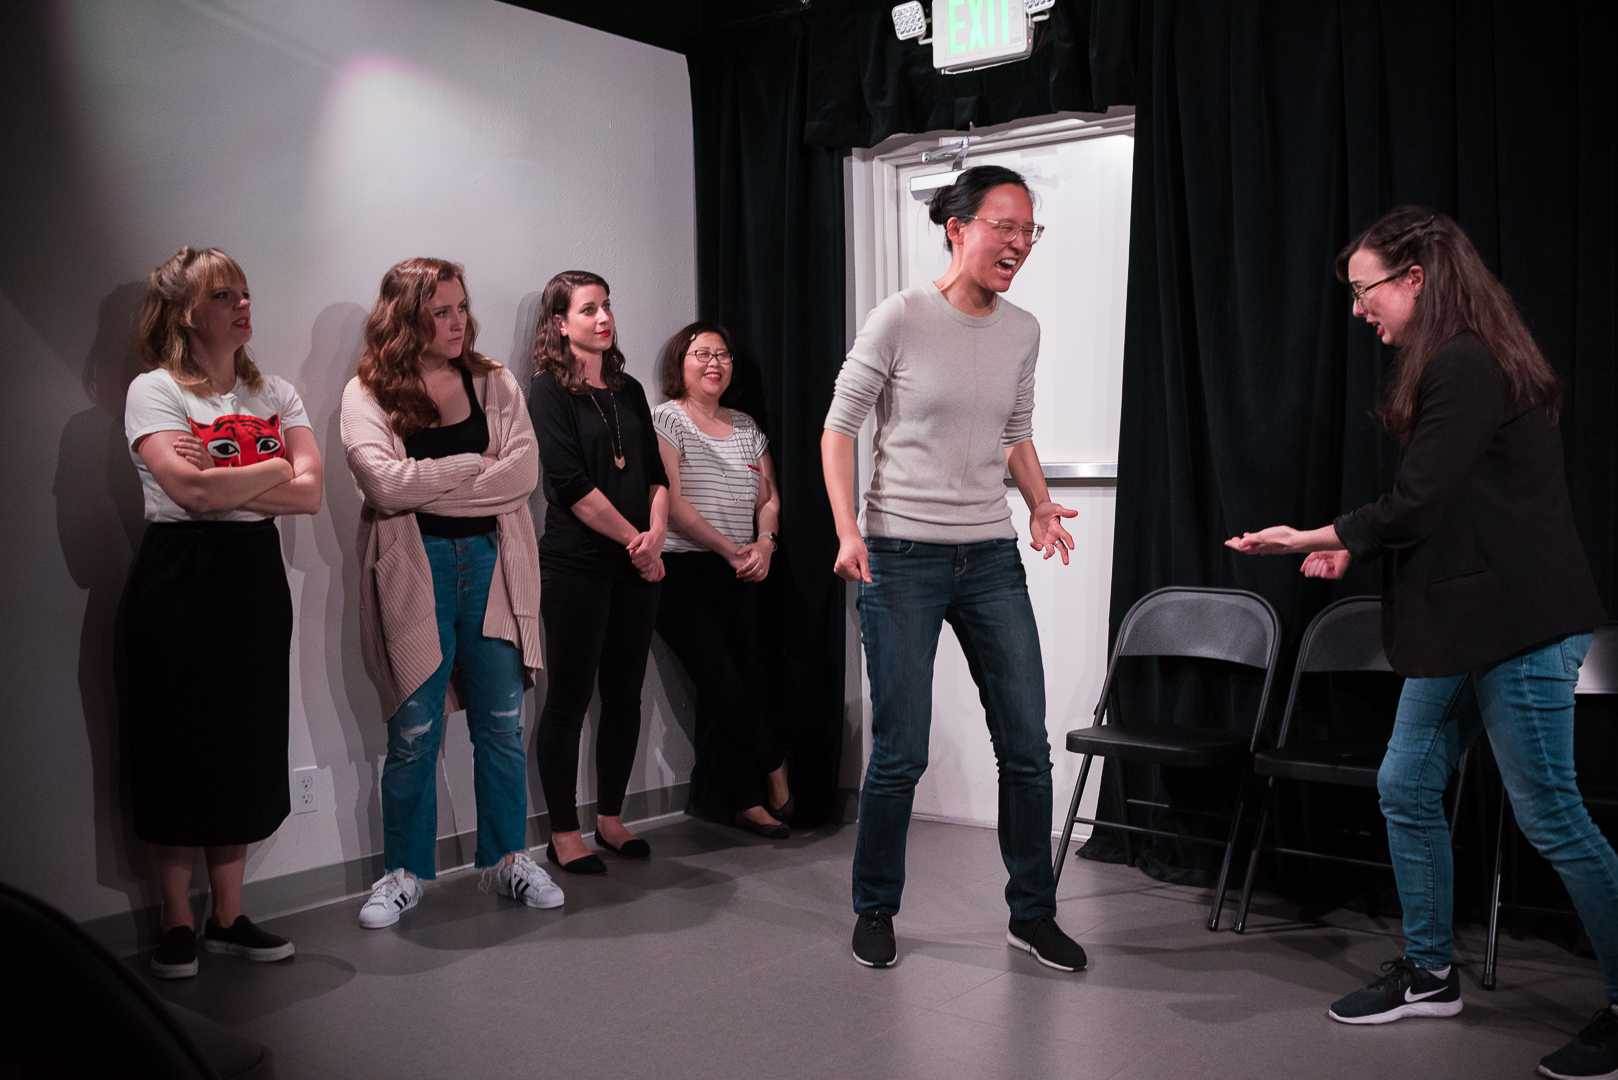 The Janice Improv Group performs their comedy routine at the Endgames Improv Training Center in the Mission district of San Francisco, Calif., on Friday, April 12, 2019. (CHRIS ROBLEDO/ Golden Gate Xpress)